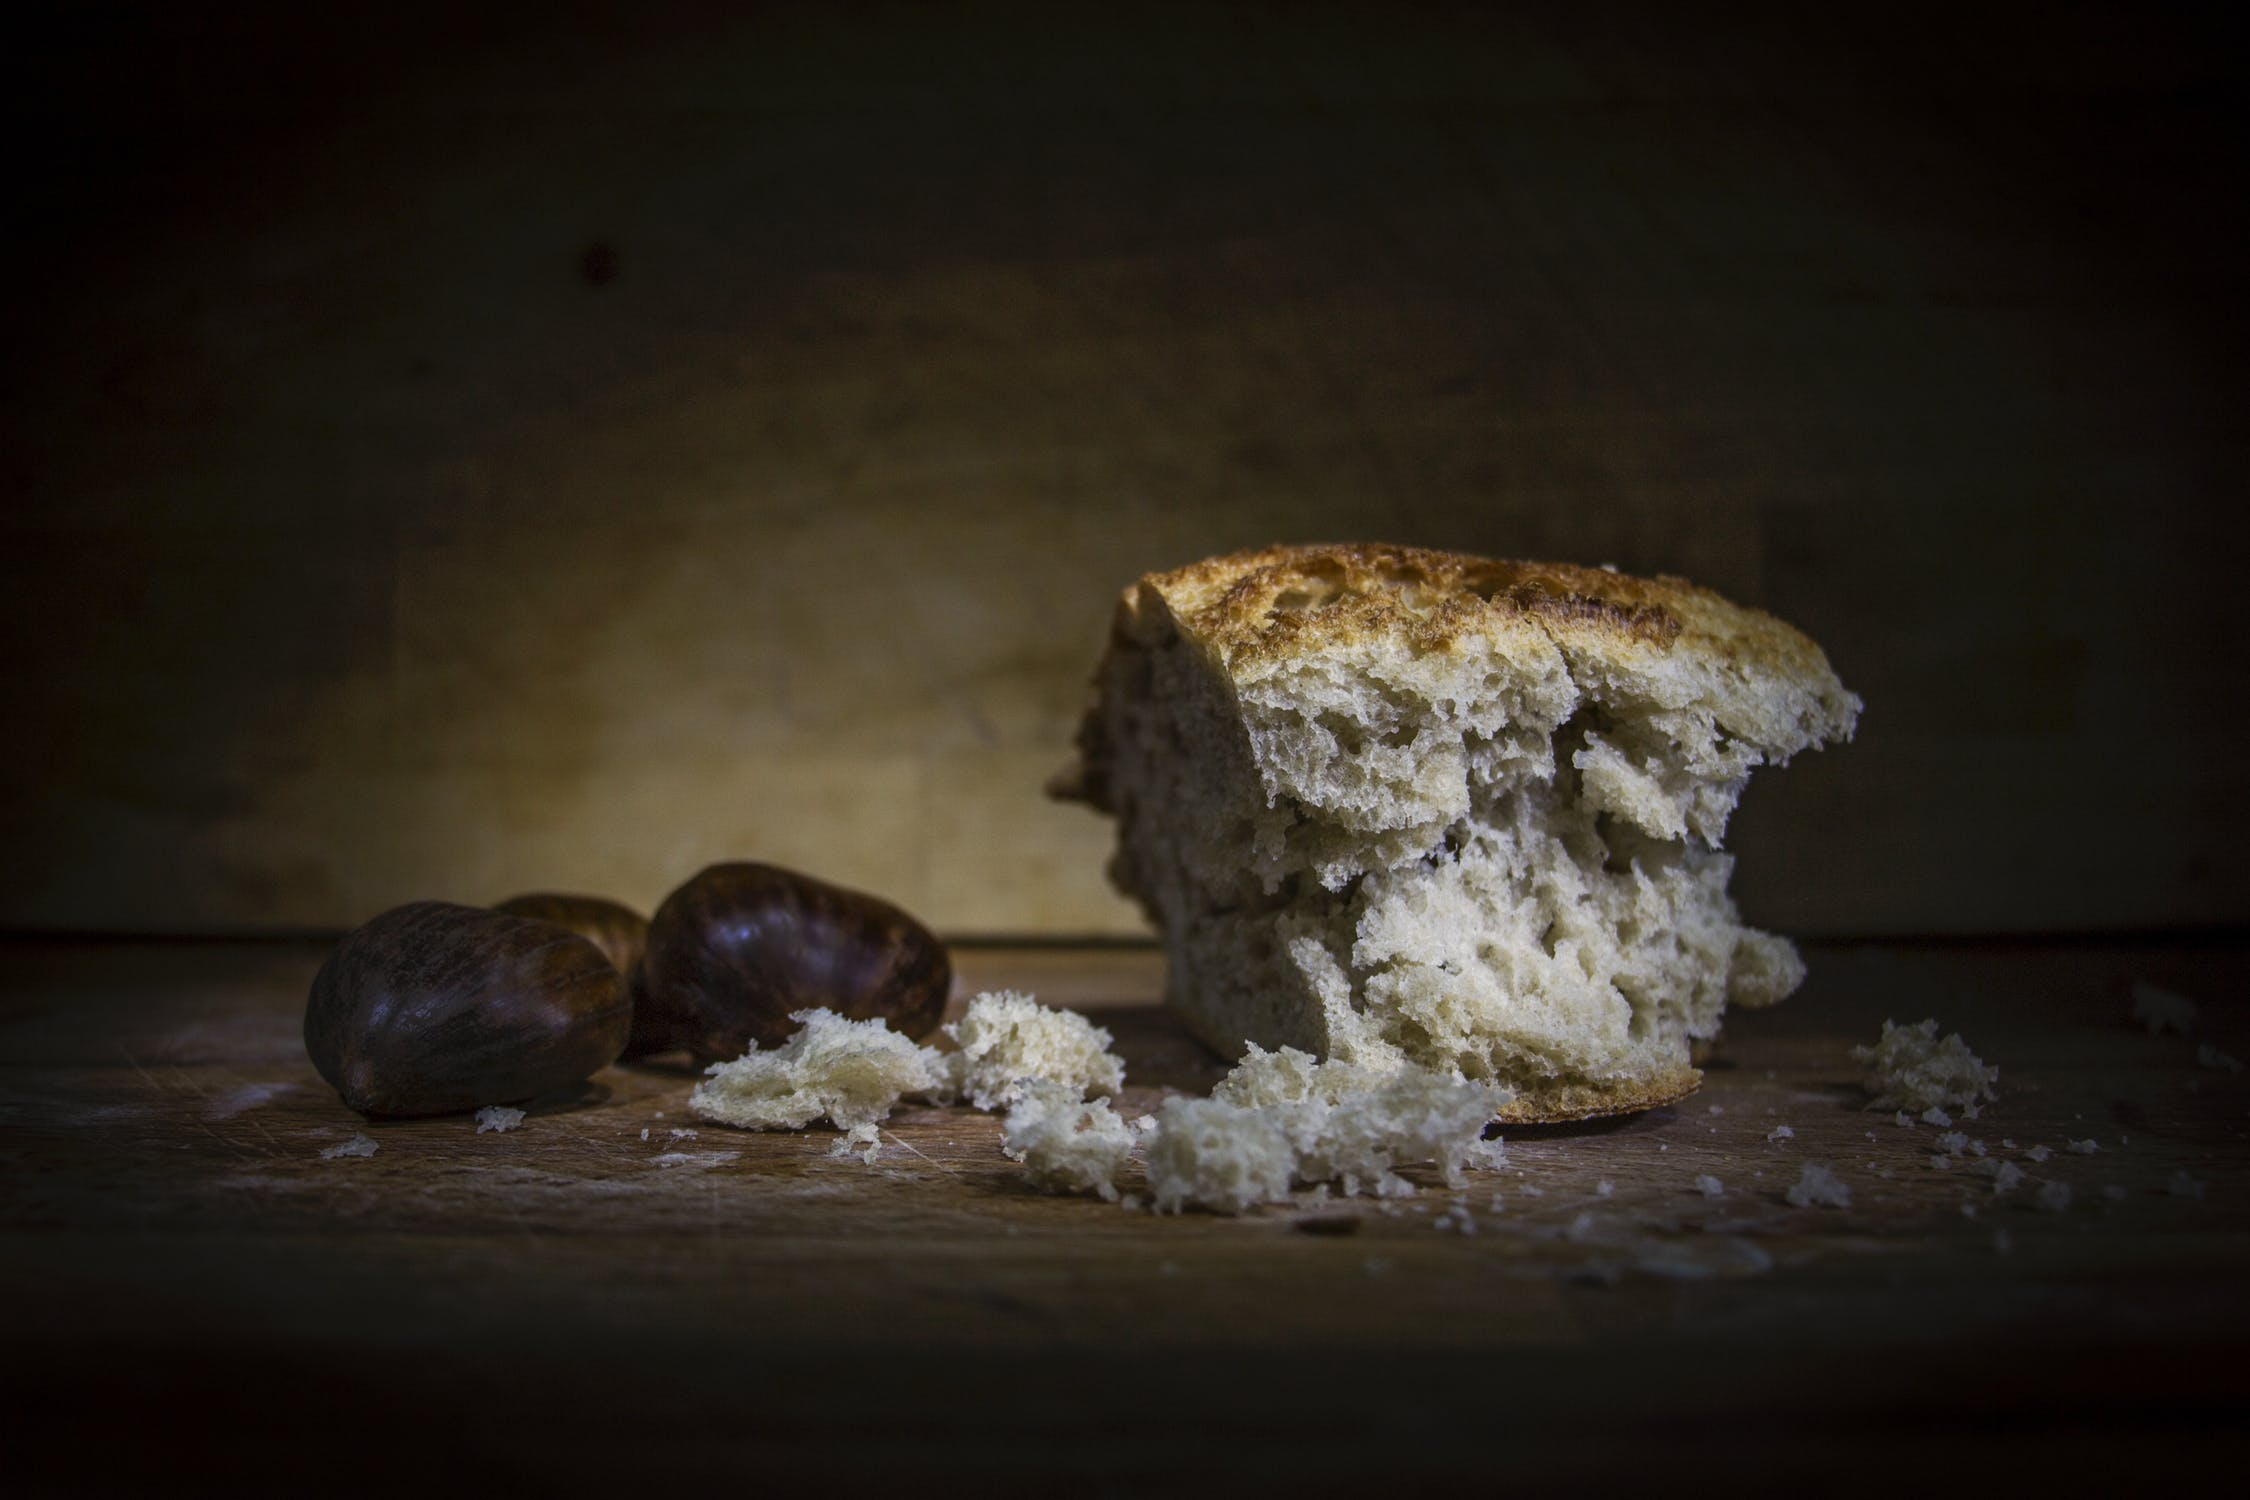 Photograph of bread from a bakery.